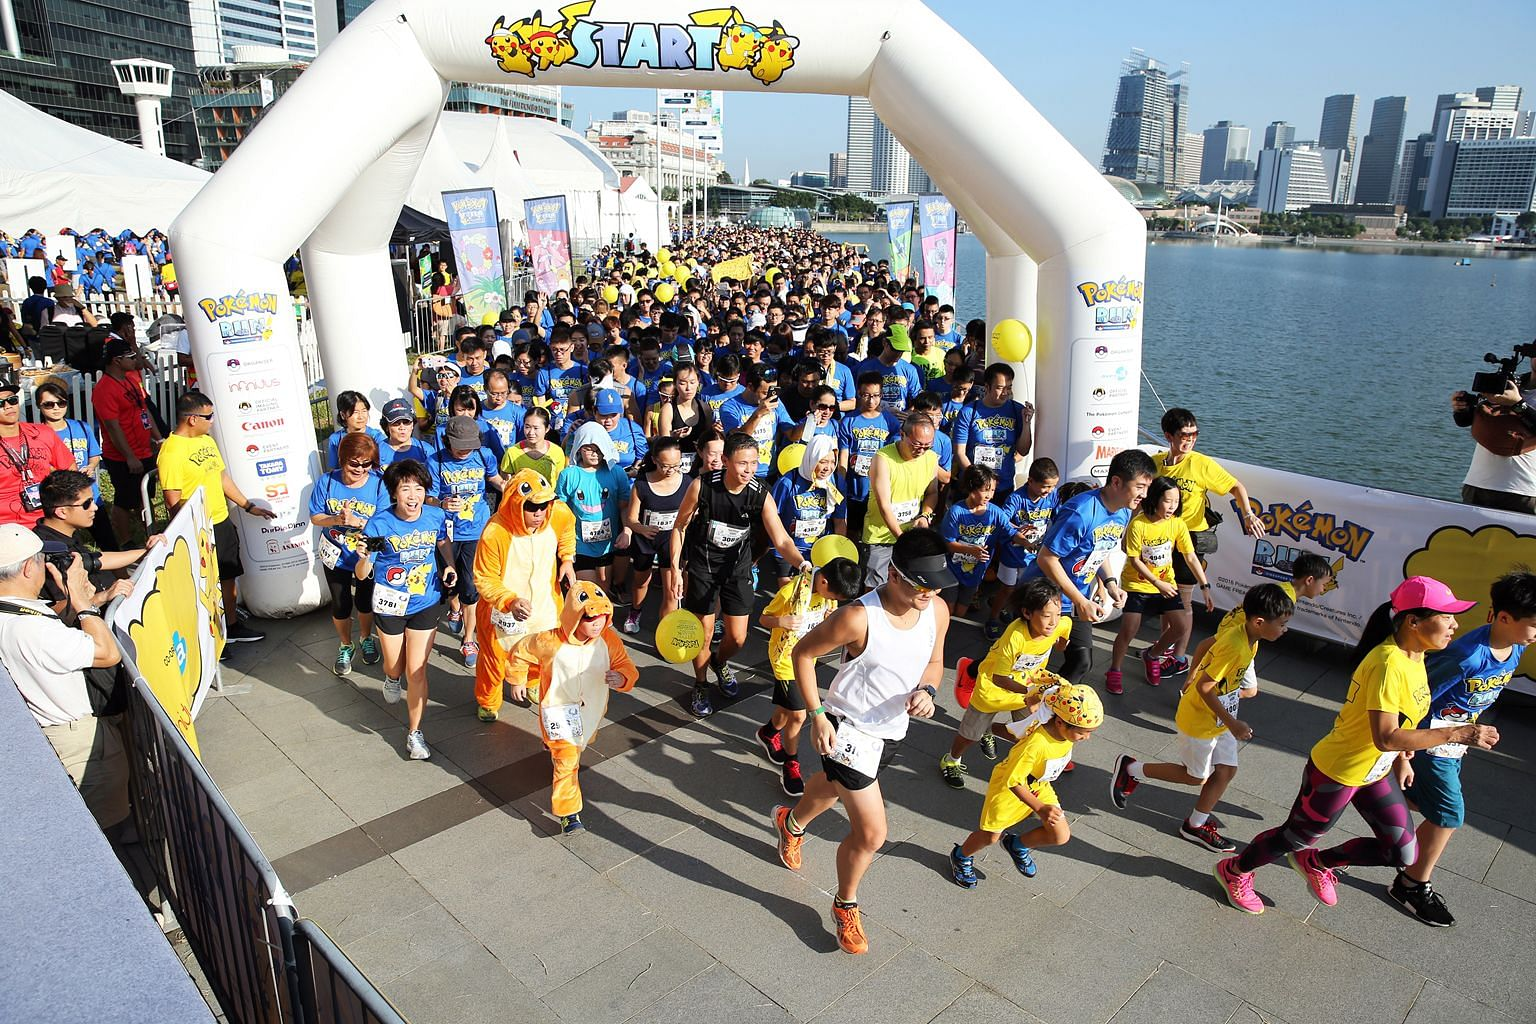 Last month's Pokemon Run drew about 6,000 runners, including many dressed as their favourite characters from the video game.